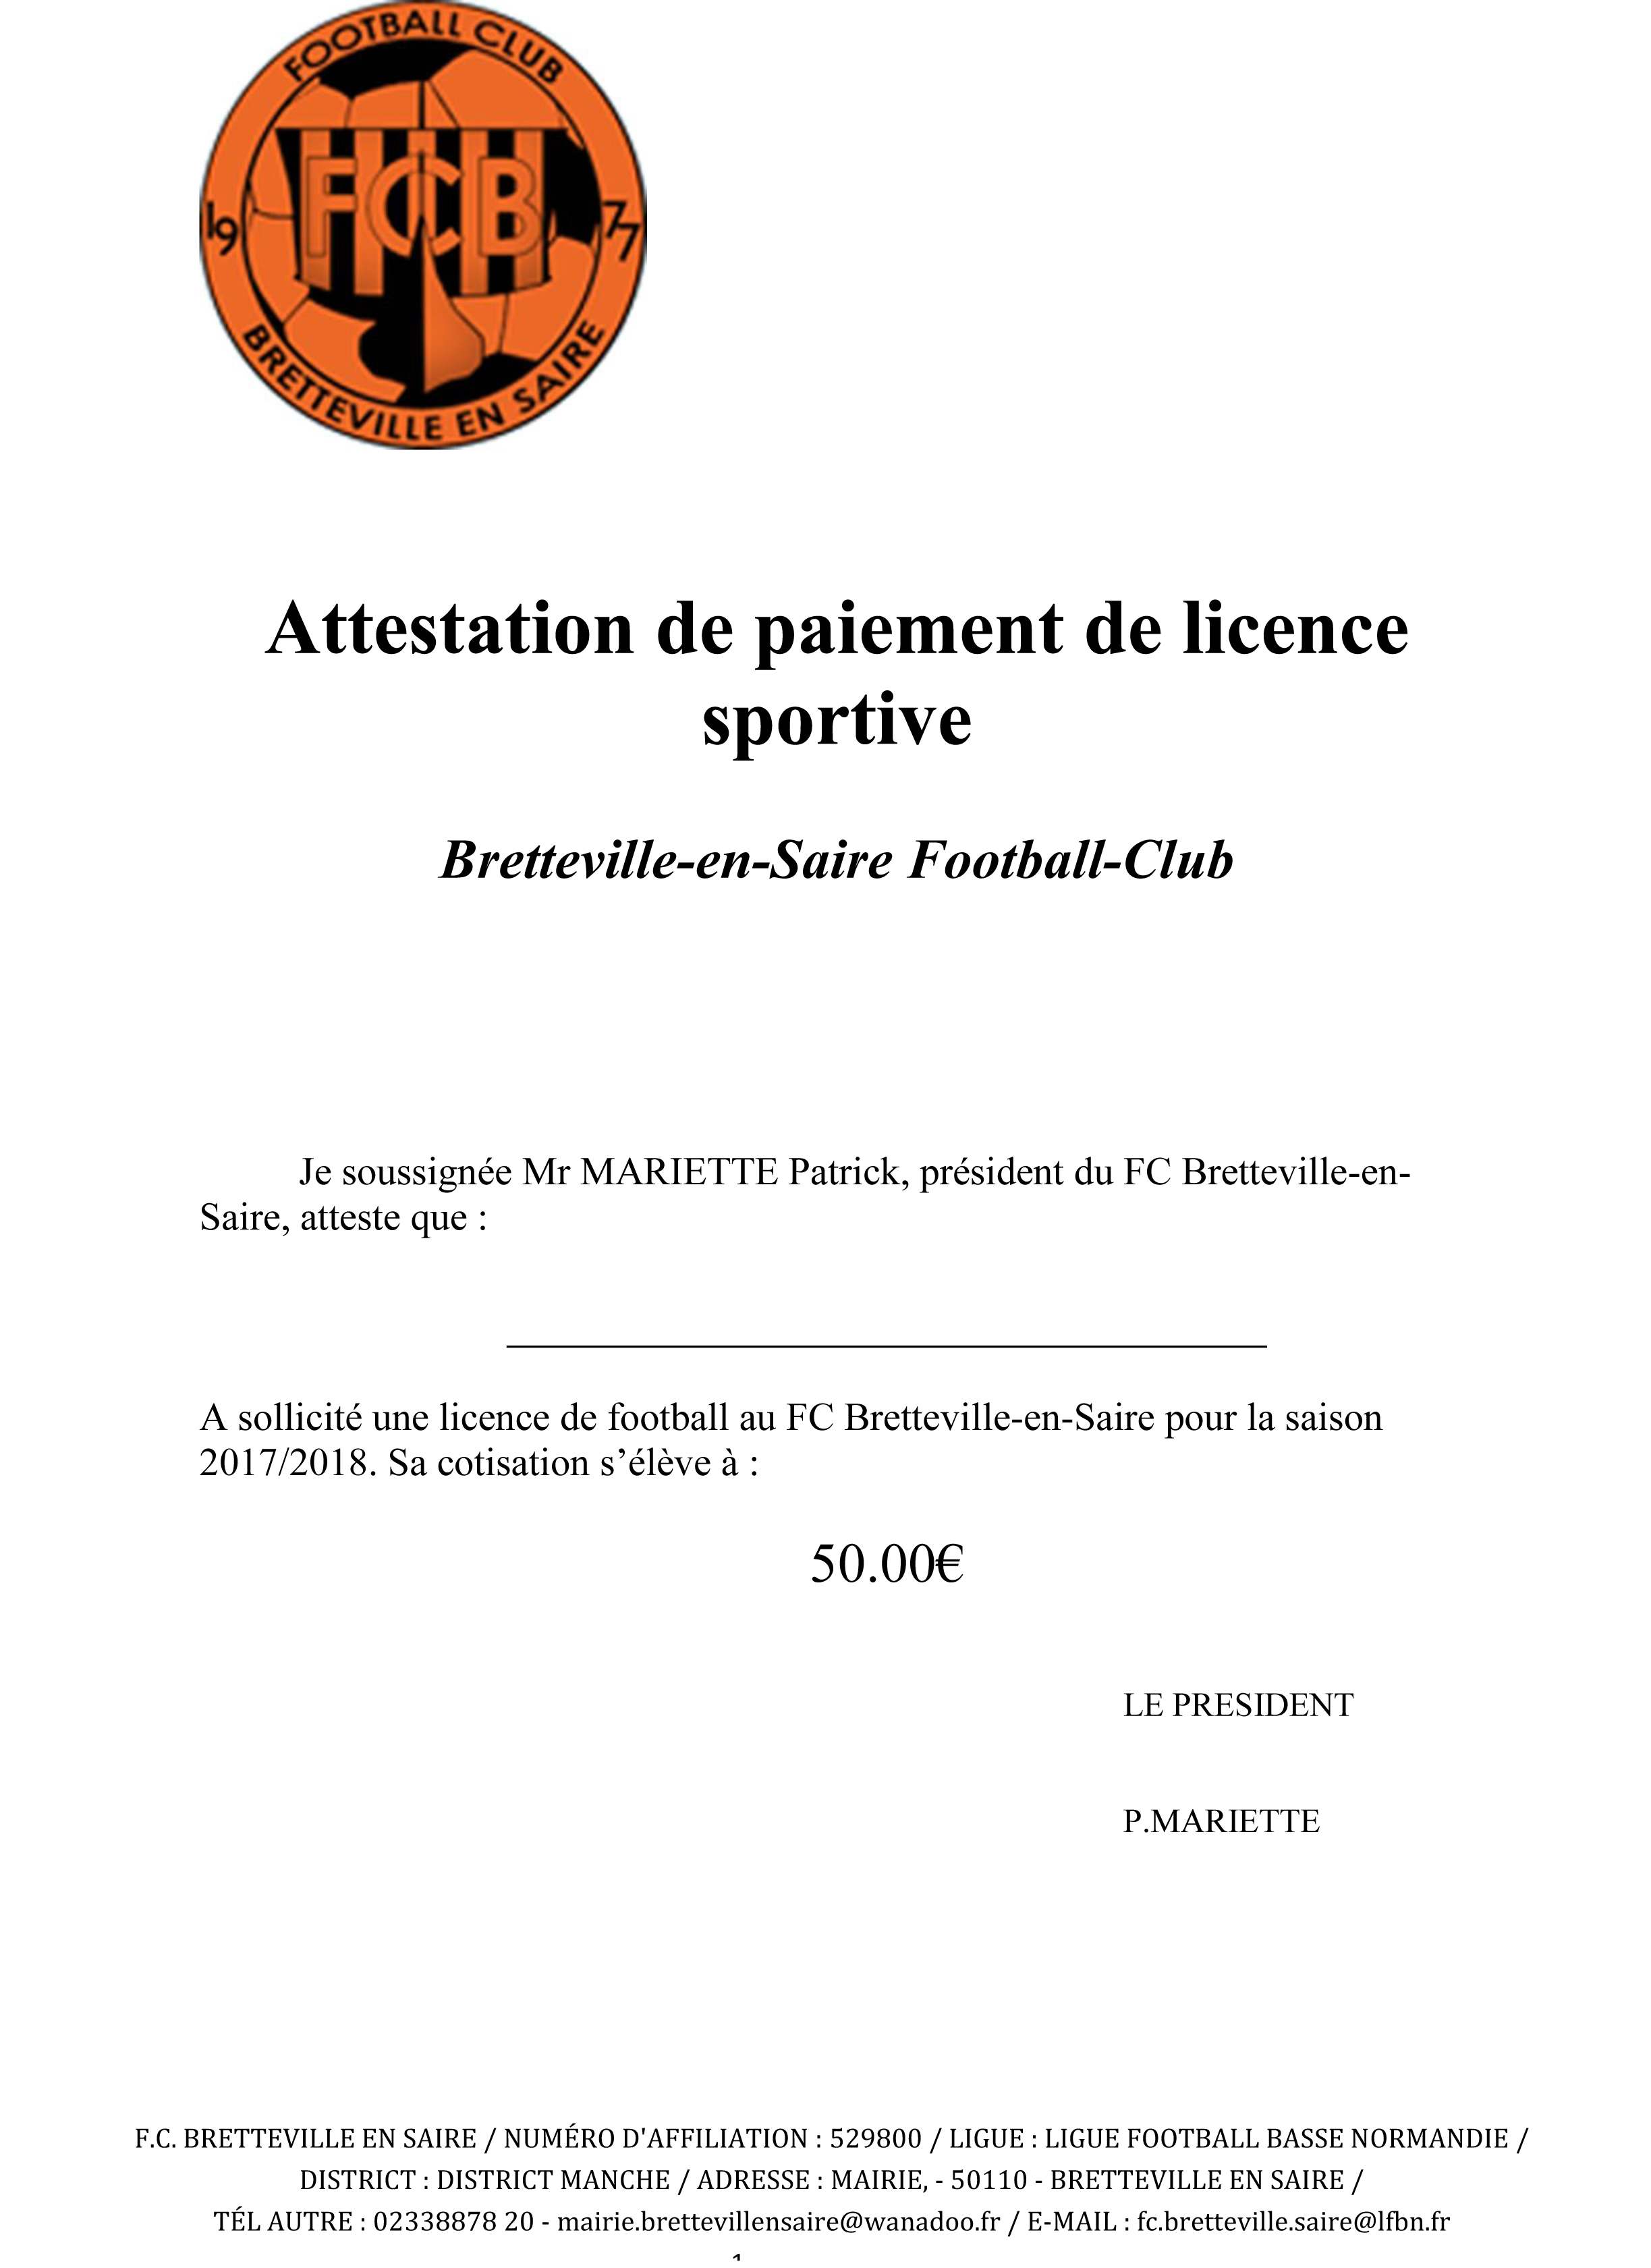 exemple facture licence sportive